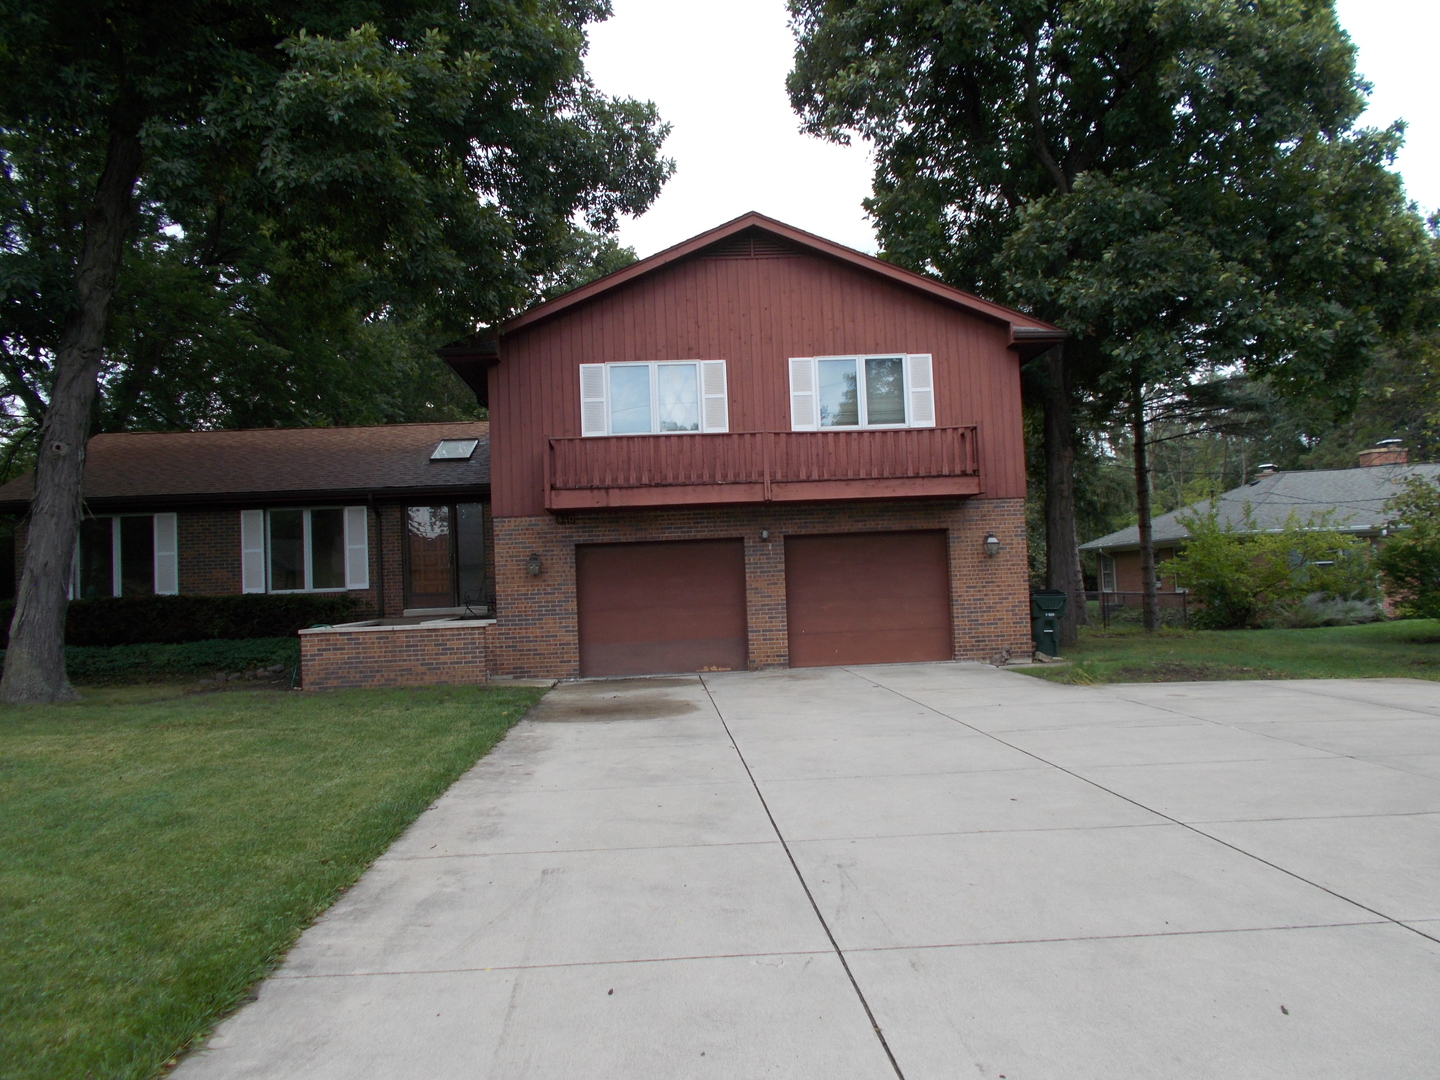 840 Queens ,Glenview, Illinois 60025